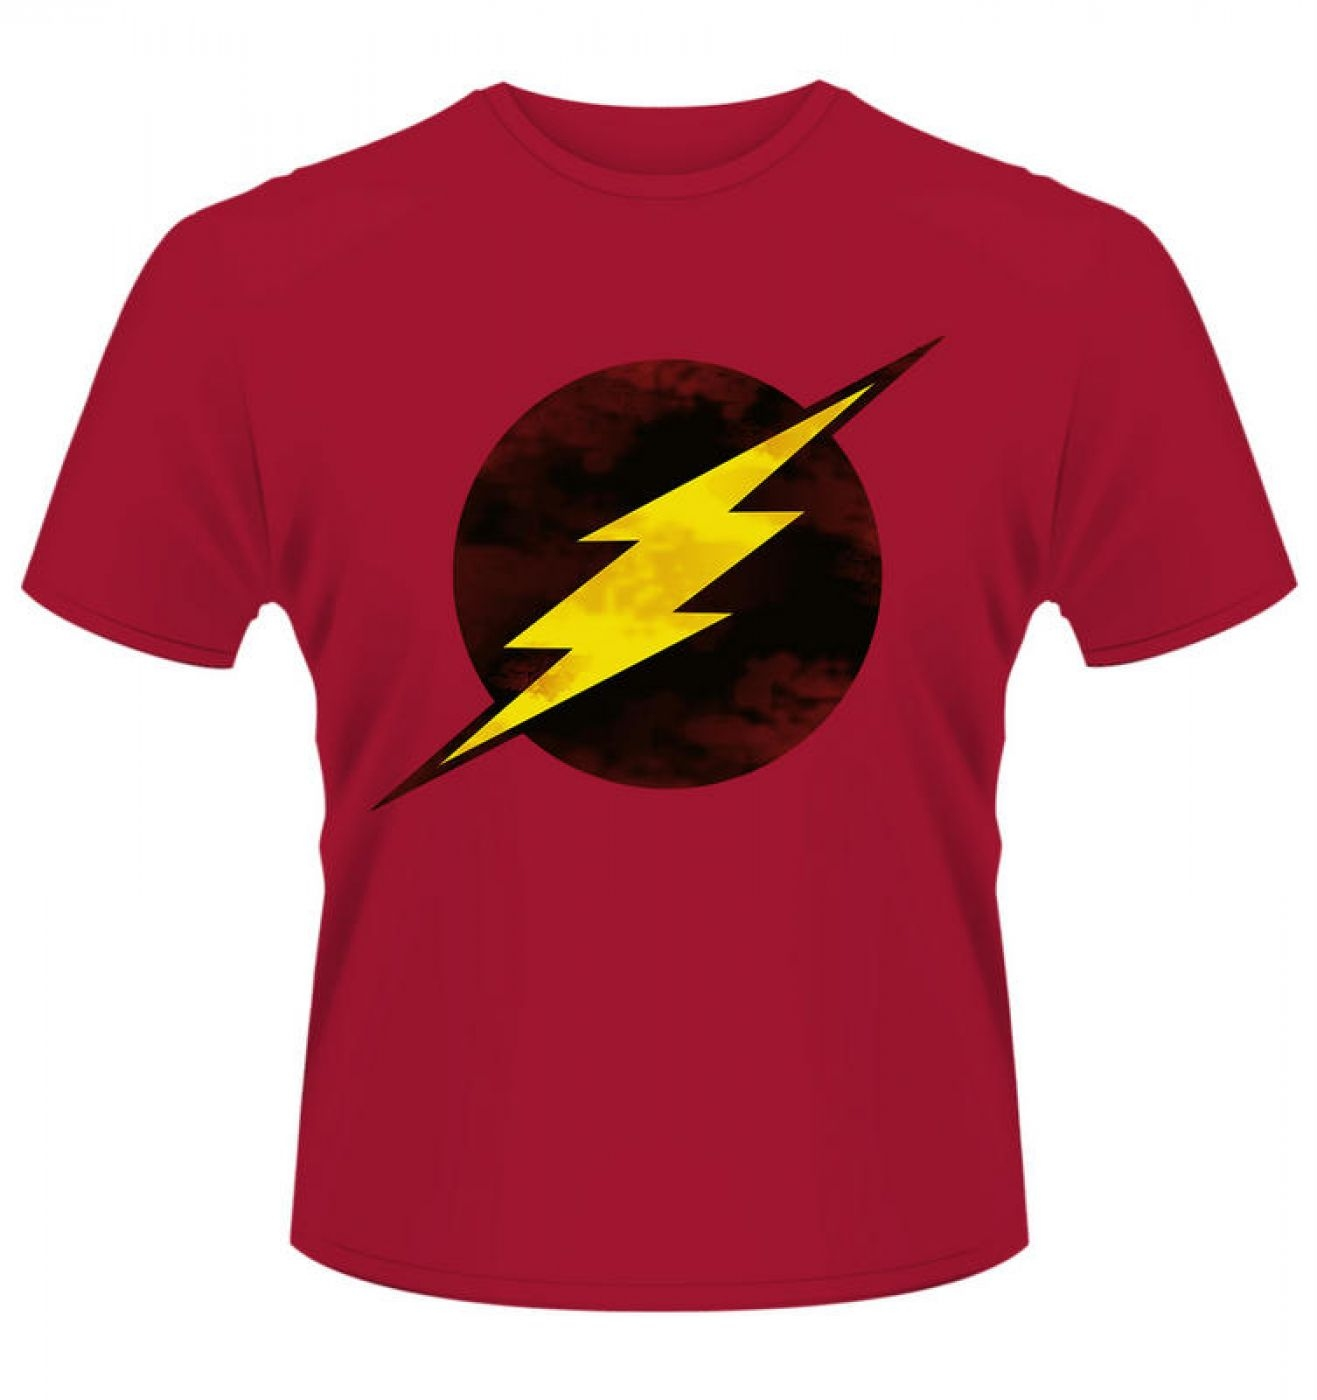 Official The Flash t-shirt by DC Originals - The Flash Logo t-shirt